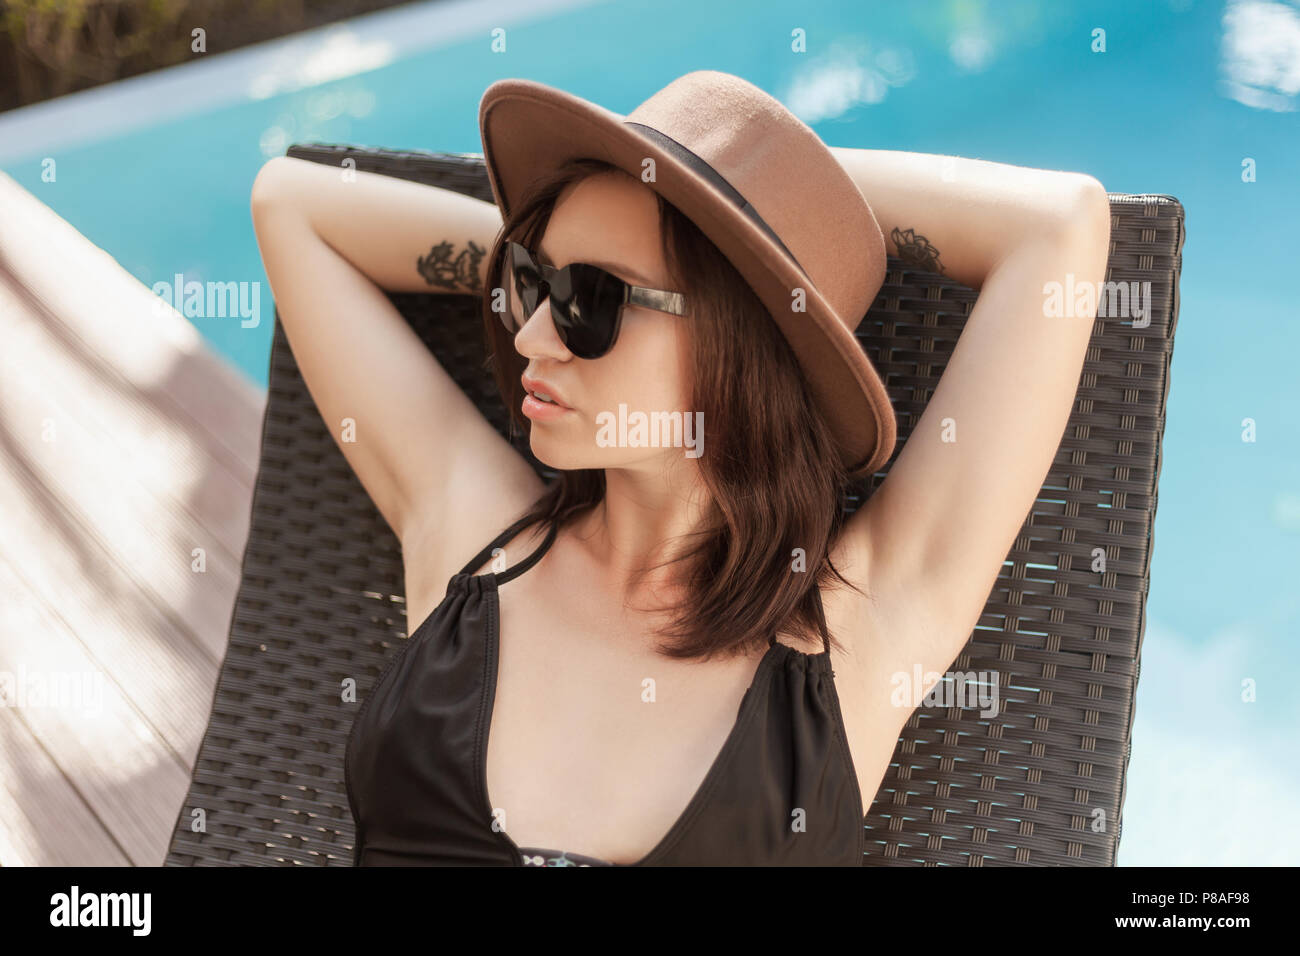 young woman in bikini and hat relaxing in sun lounge at poolside - Stock Image